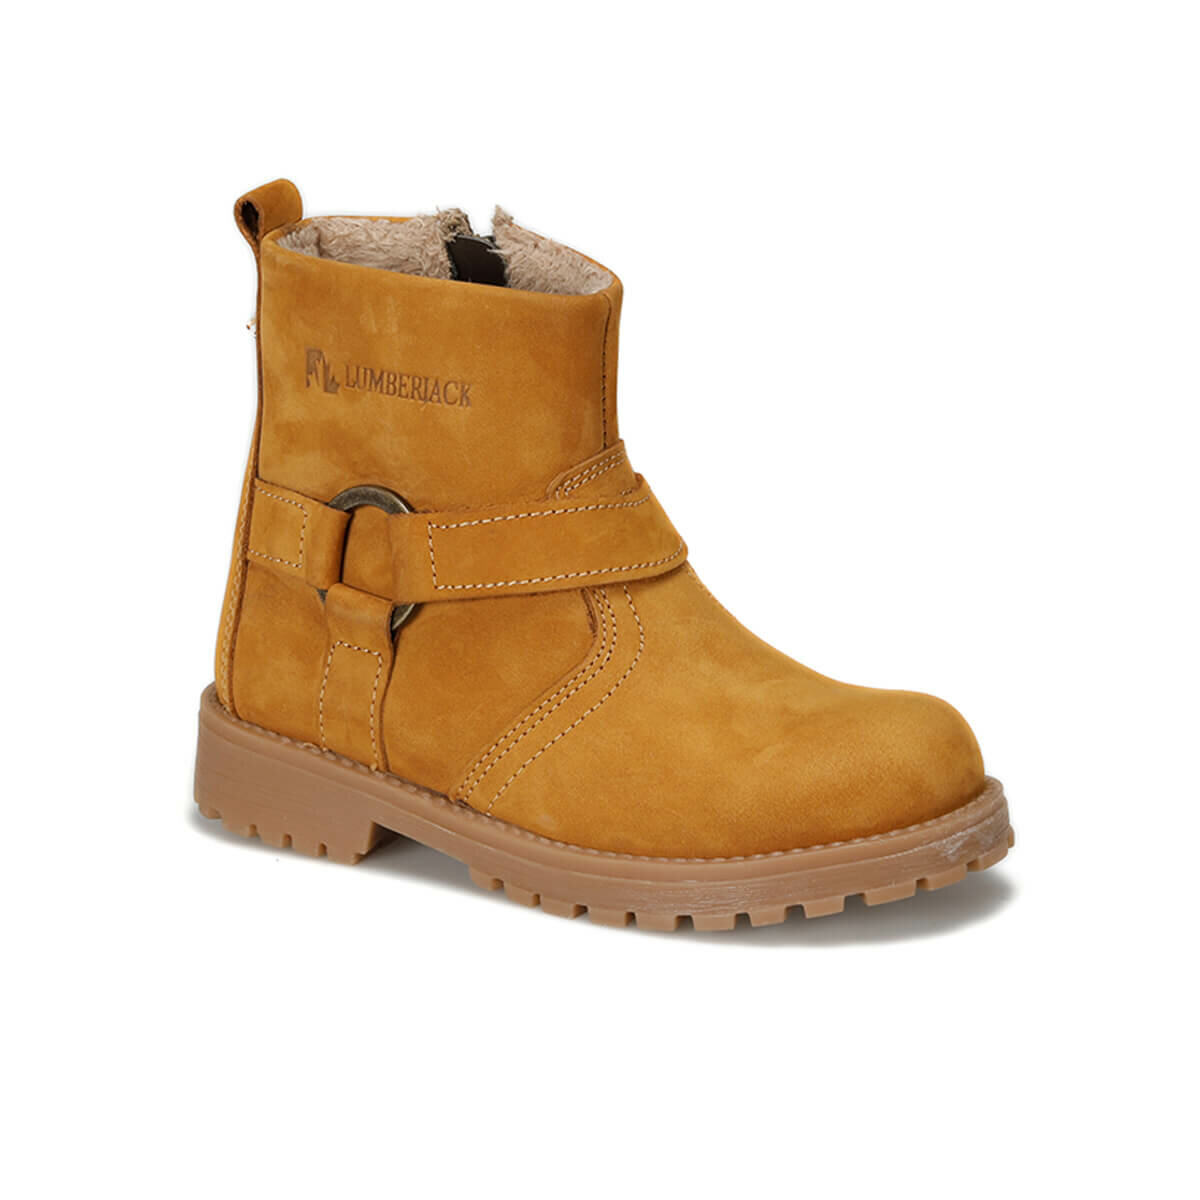 FLO SON 9PR Yellow Male Child Boots LUMBERJACK